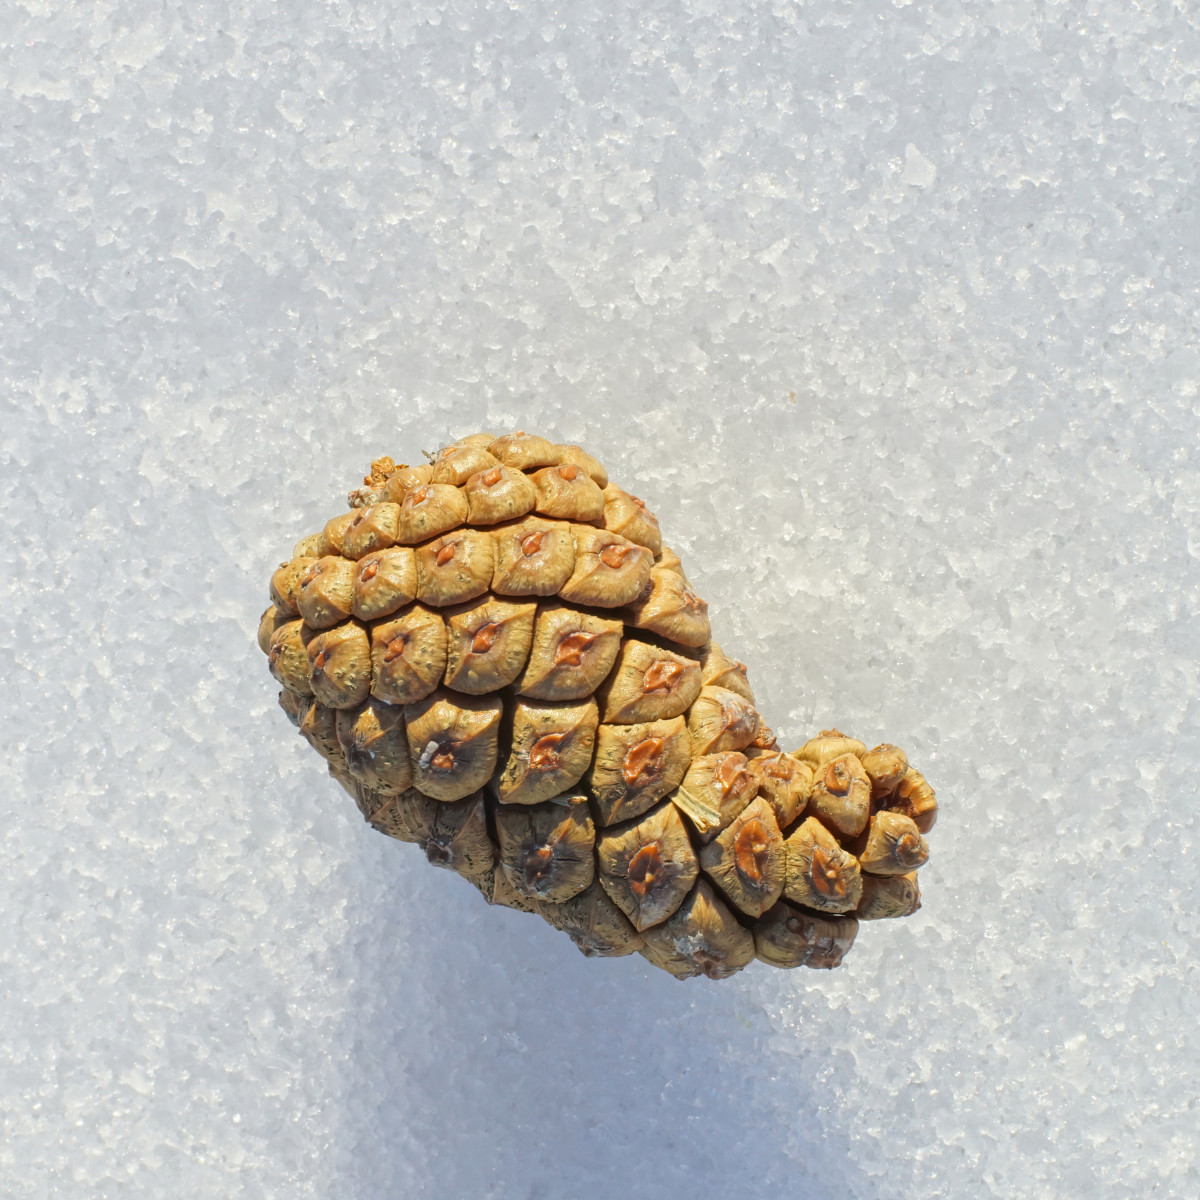 JACK PINE TREE SEED CONE SHOWS CHARACTERISTIC CURVED TIP